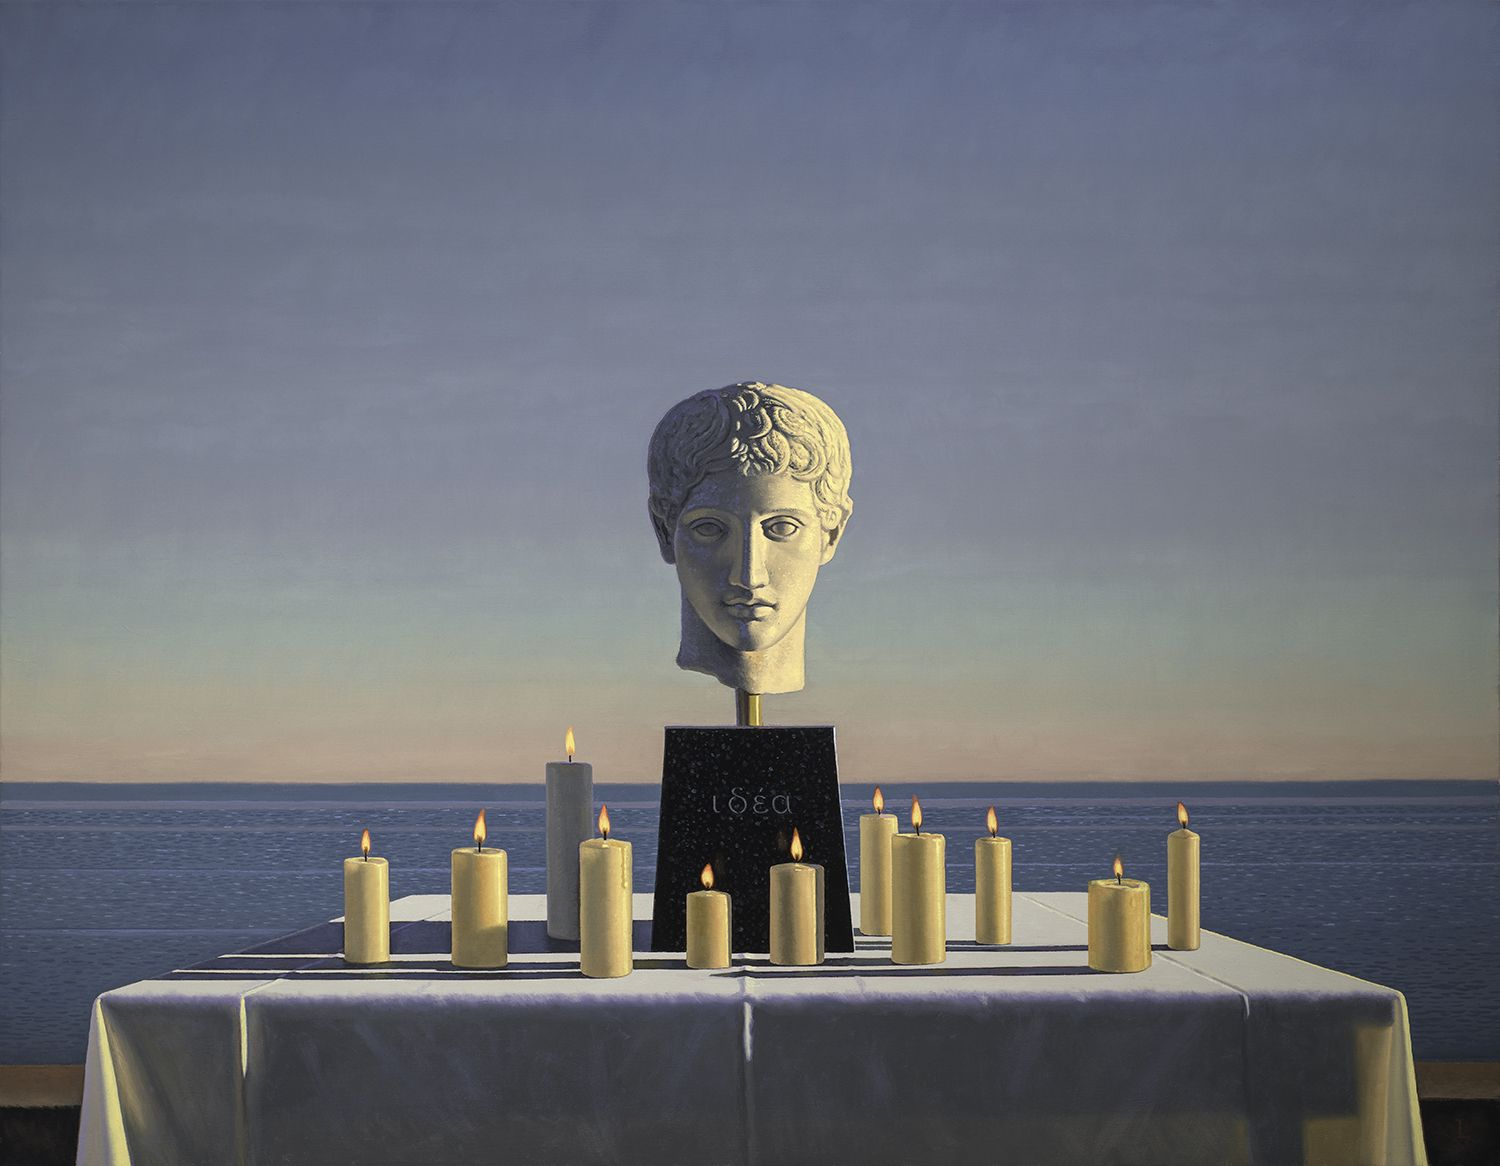 David Ligare (b. 1945), Still Life with Polykleitian Head and Candles (Idea), 2018